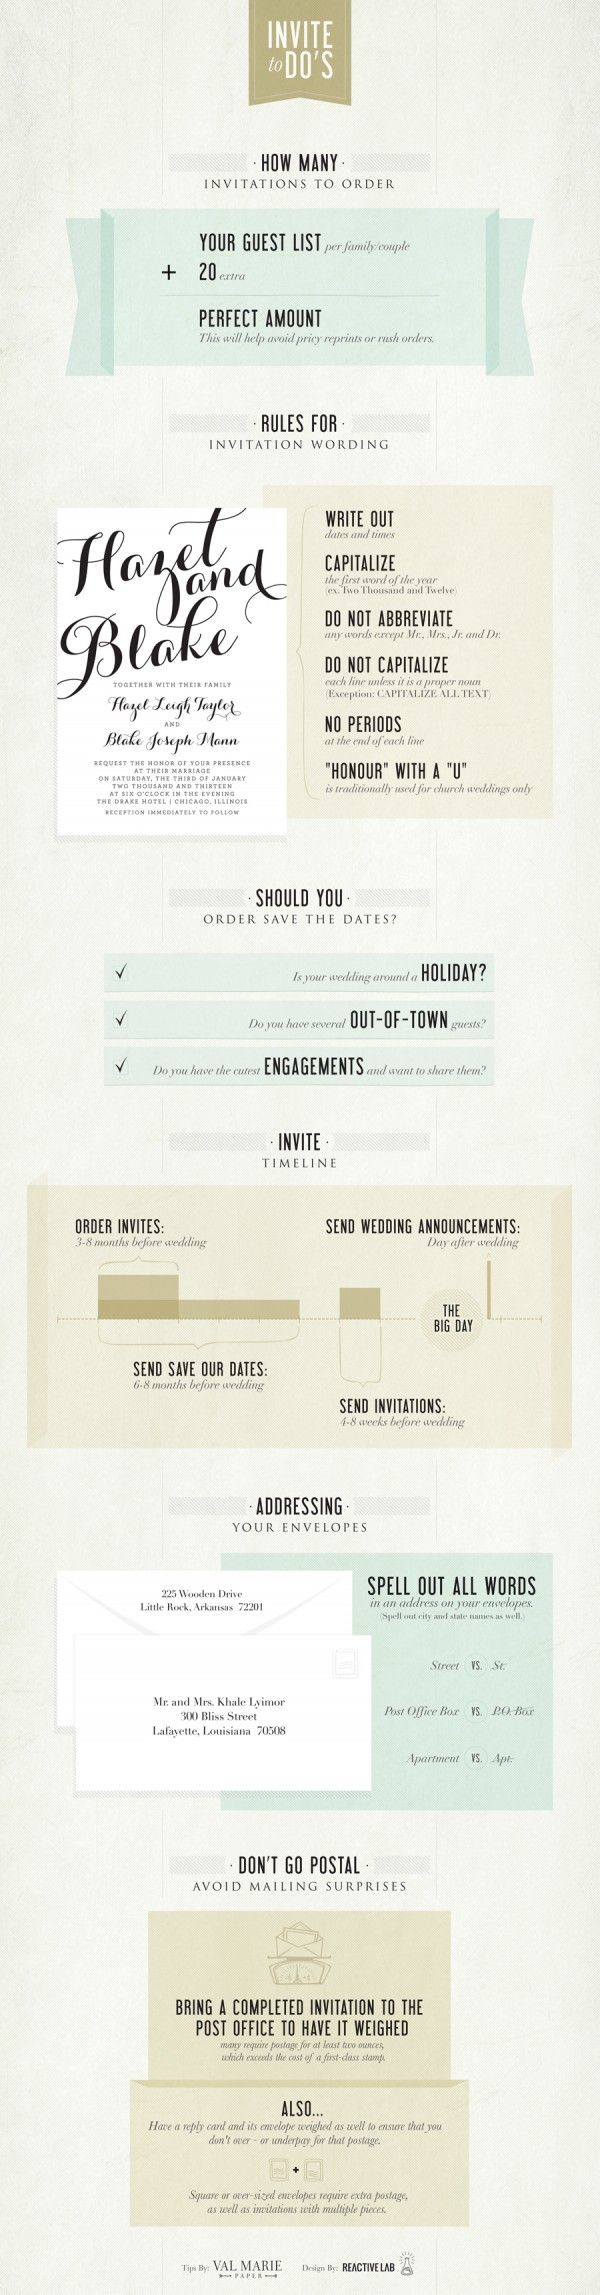 Invite To Dos: All You Need To Know About Wedding Invitations In One  Infographic